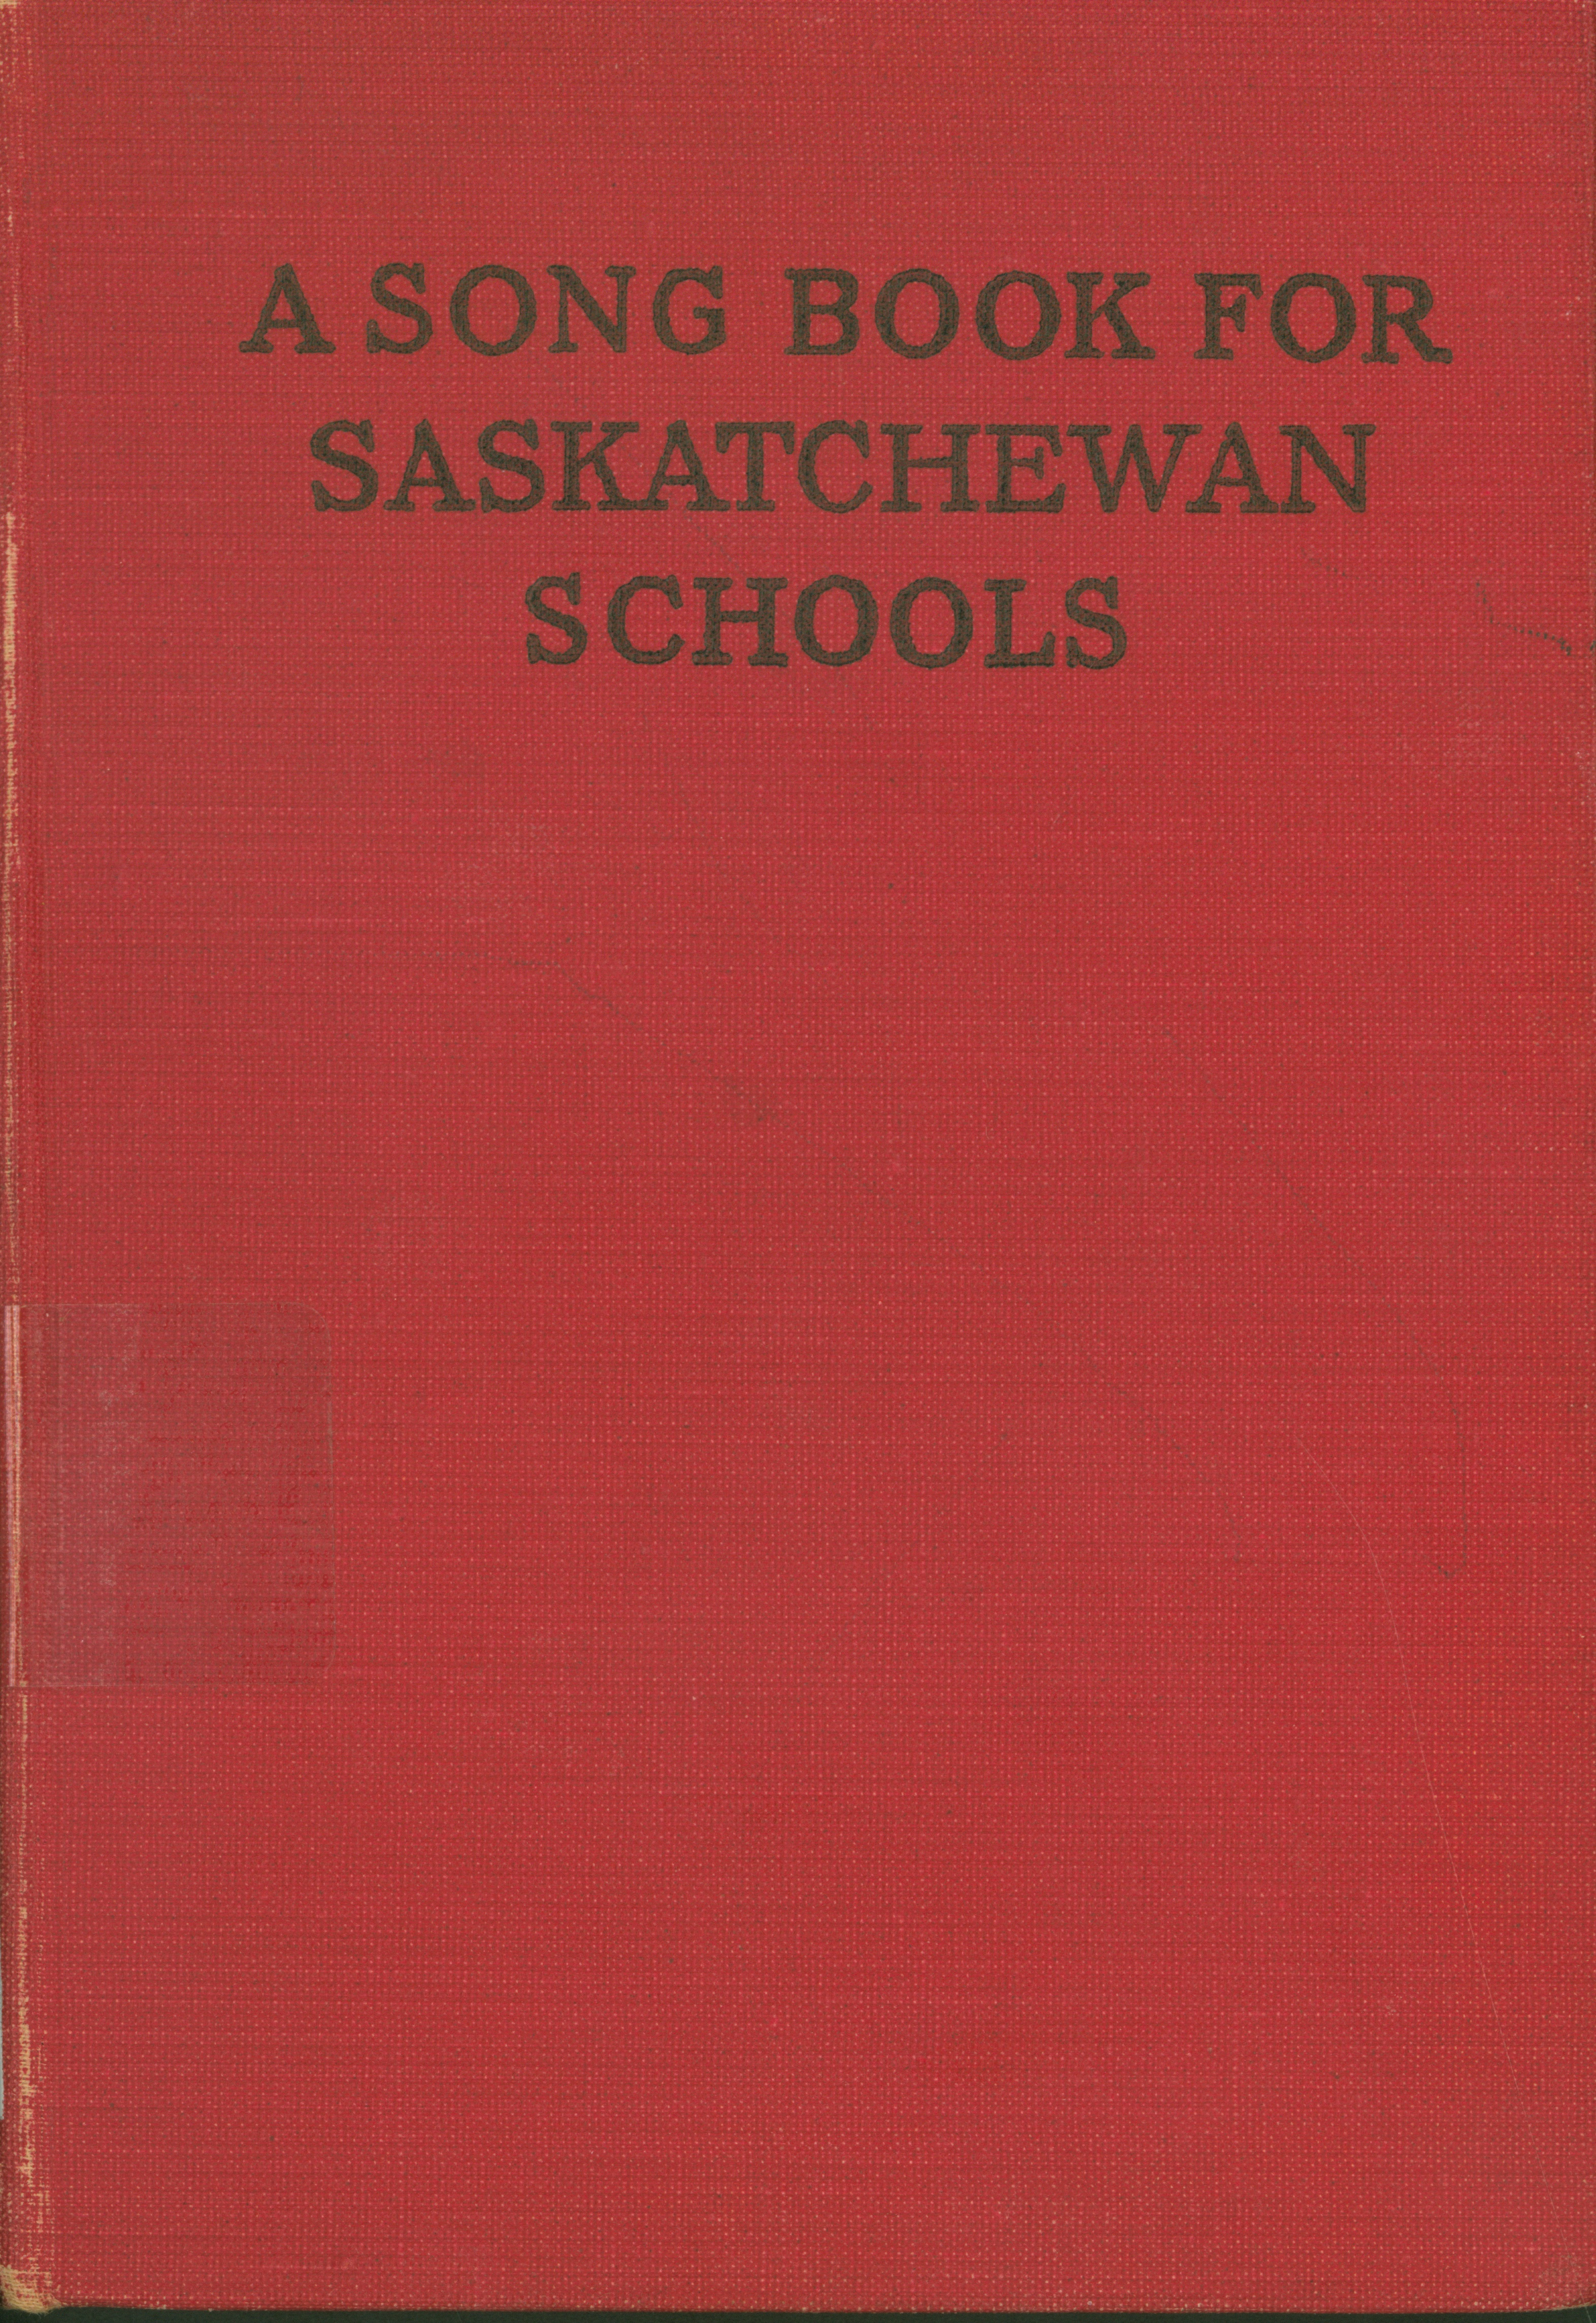 A Song Book For Saskatchewan Schools